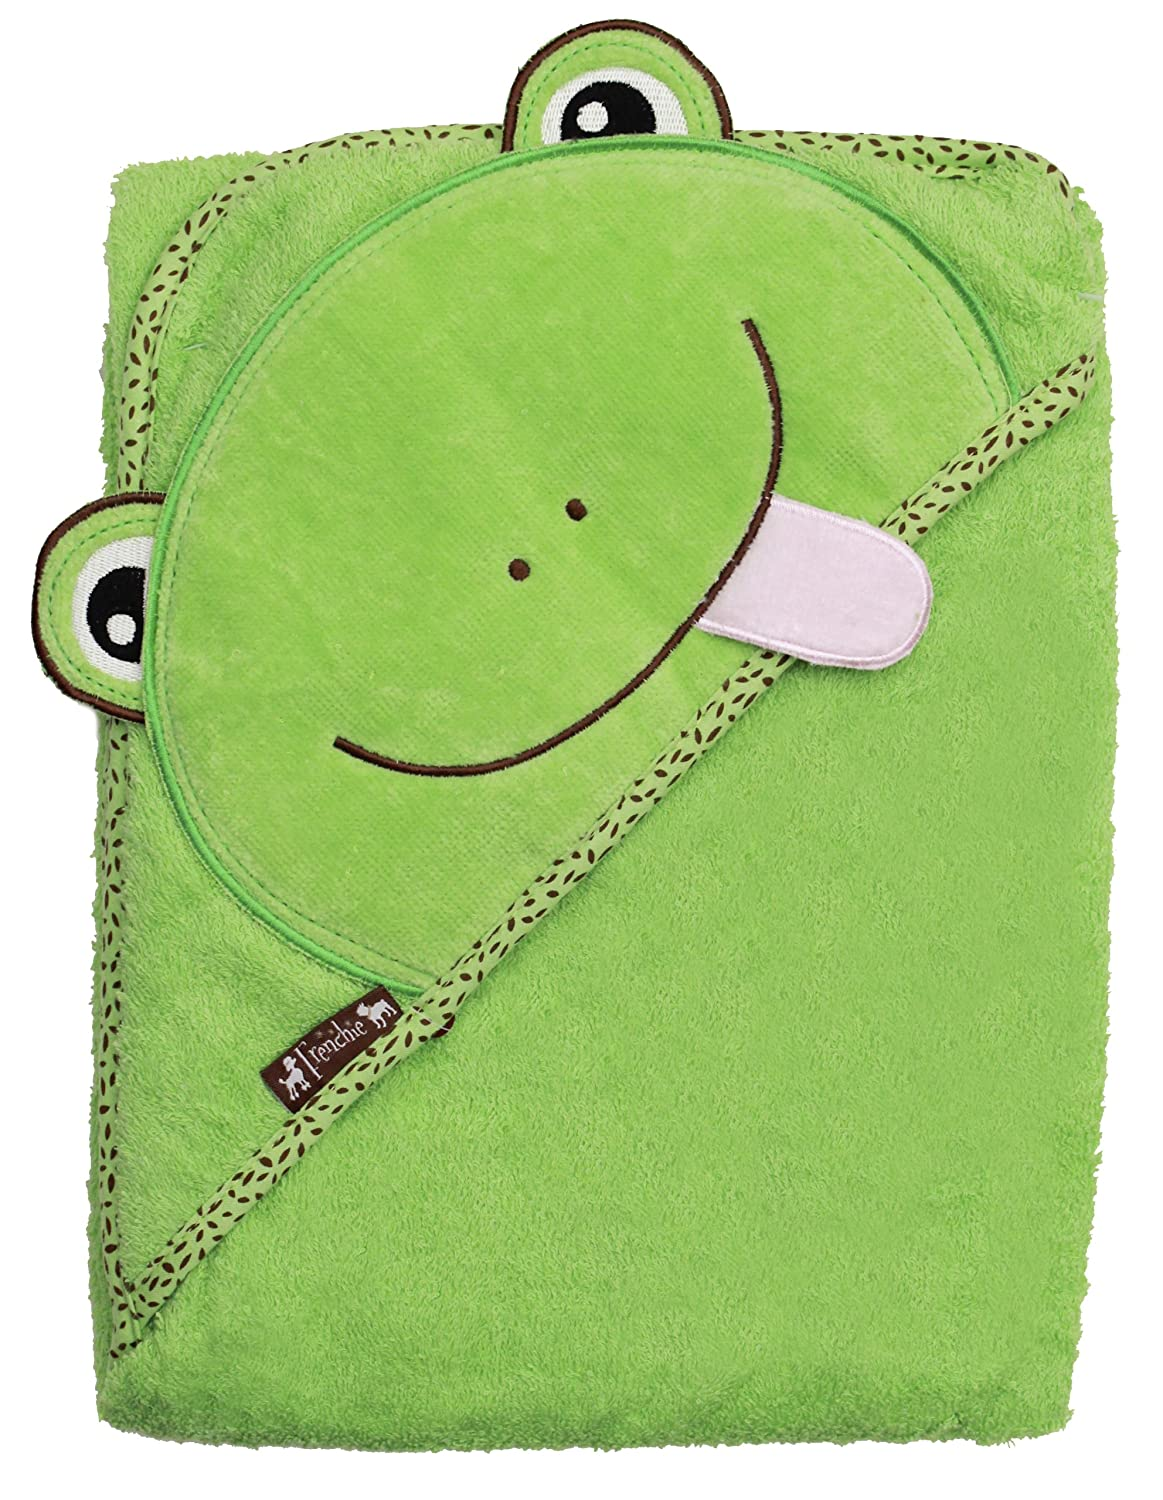 FRENCHIE MINI COUTURE Frog Hooded Towel, Green 155